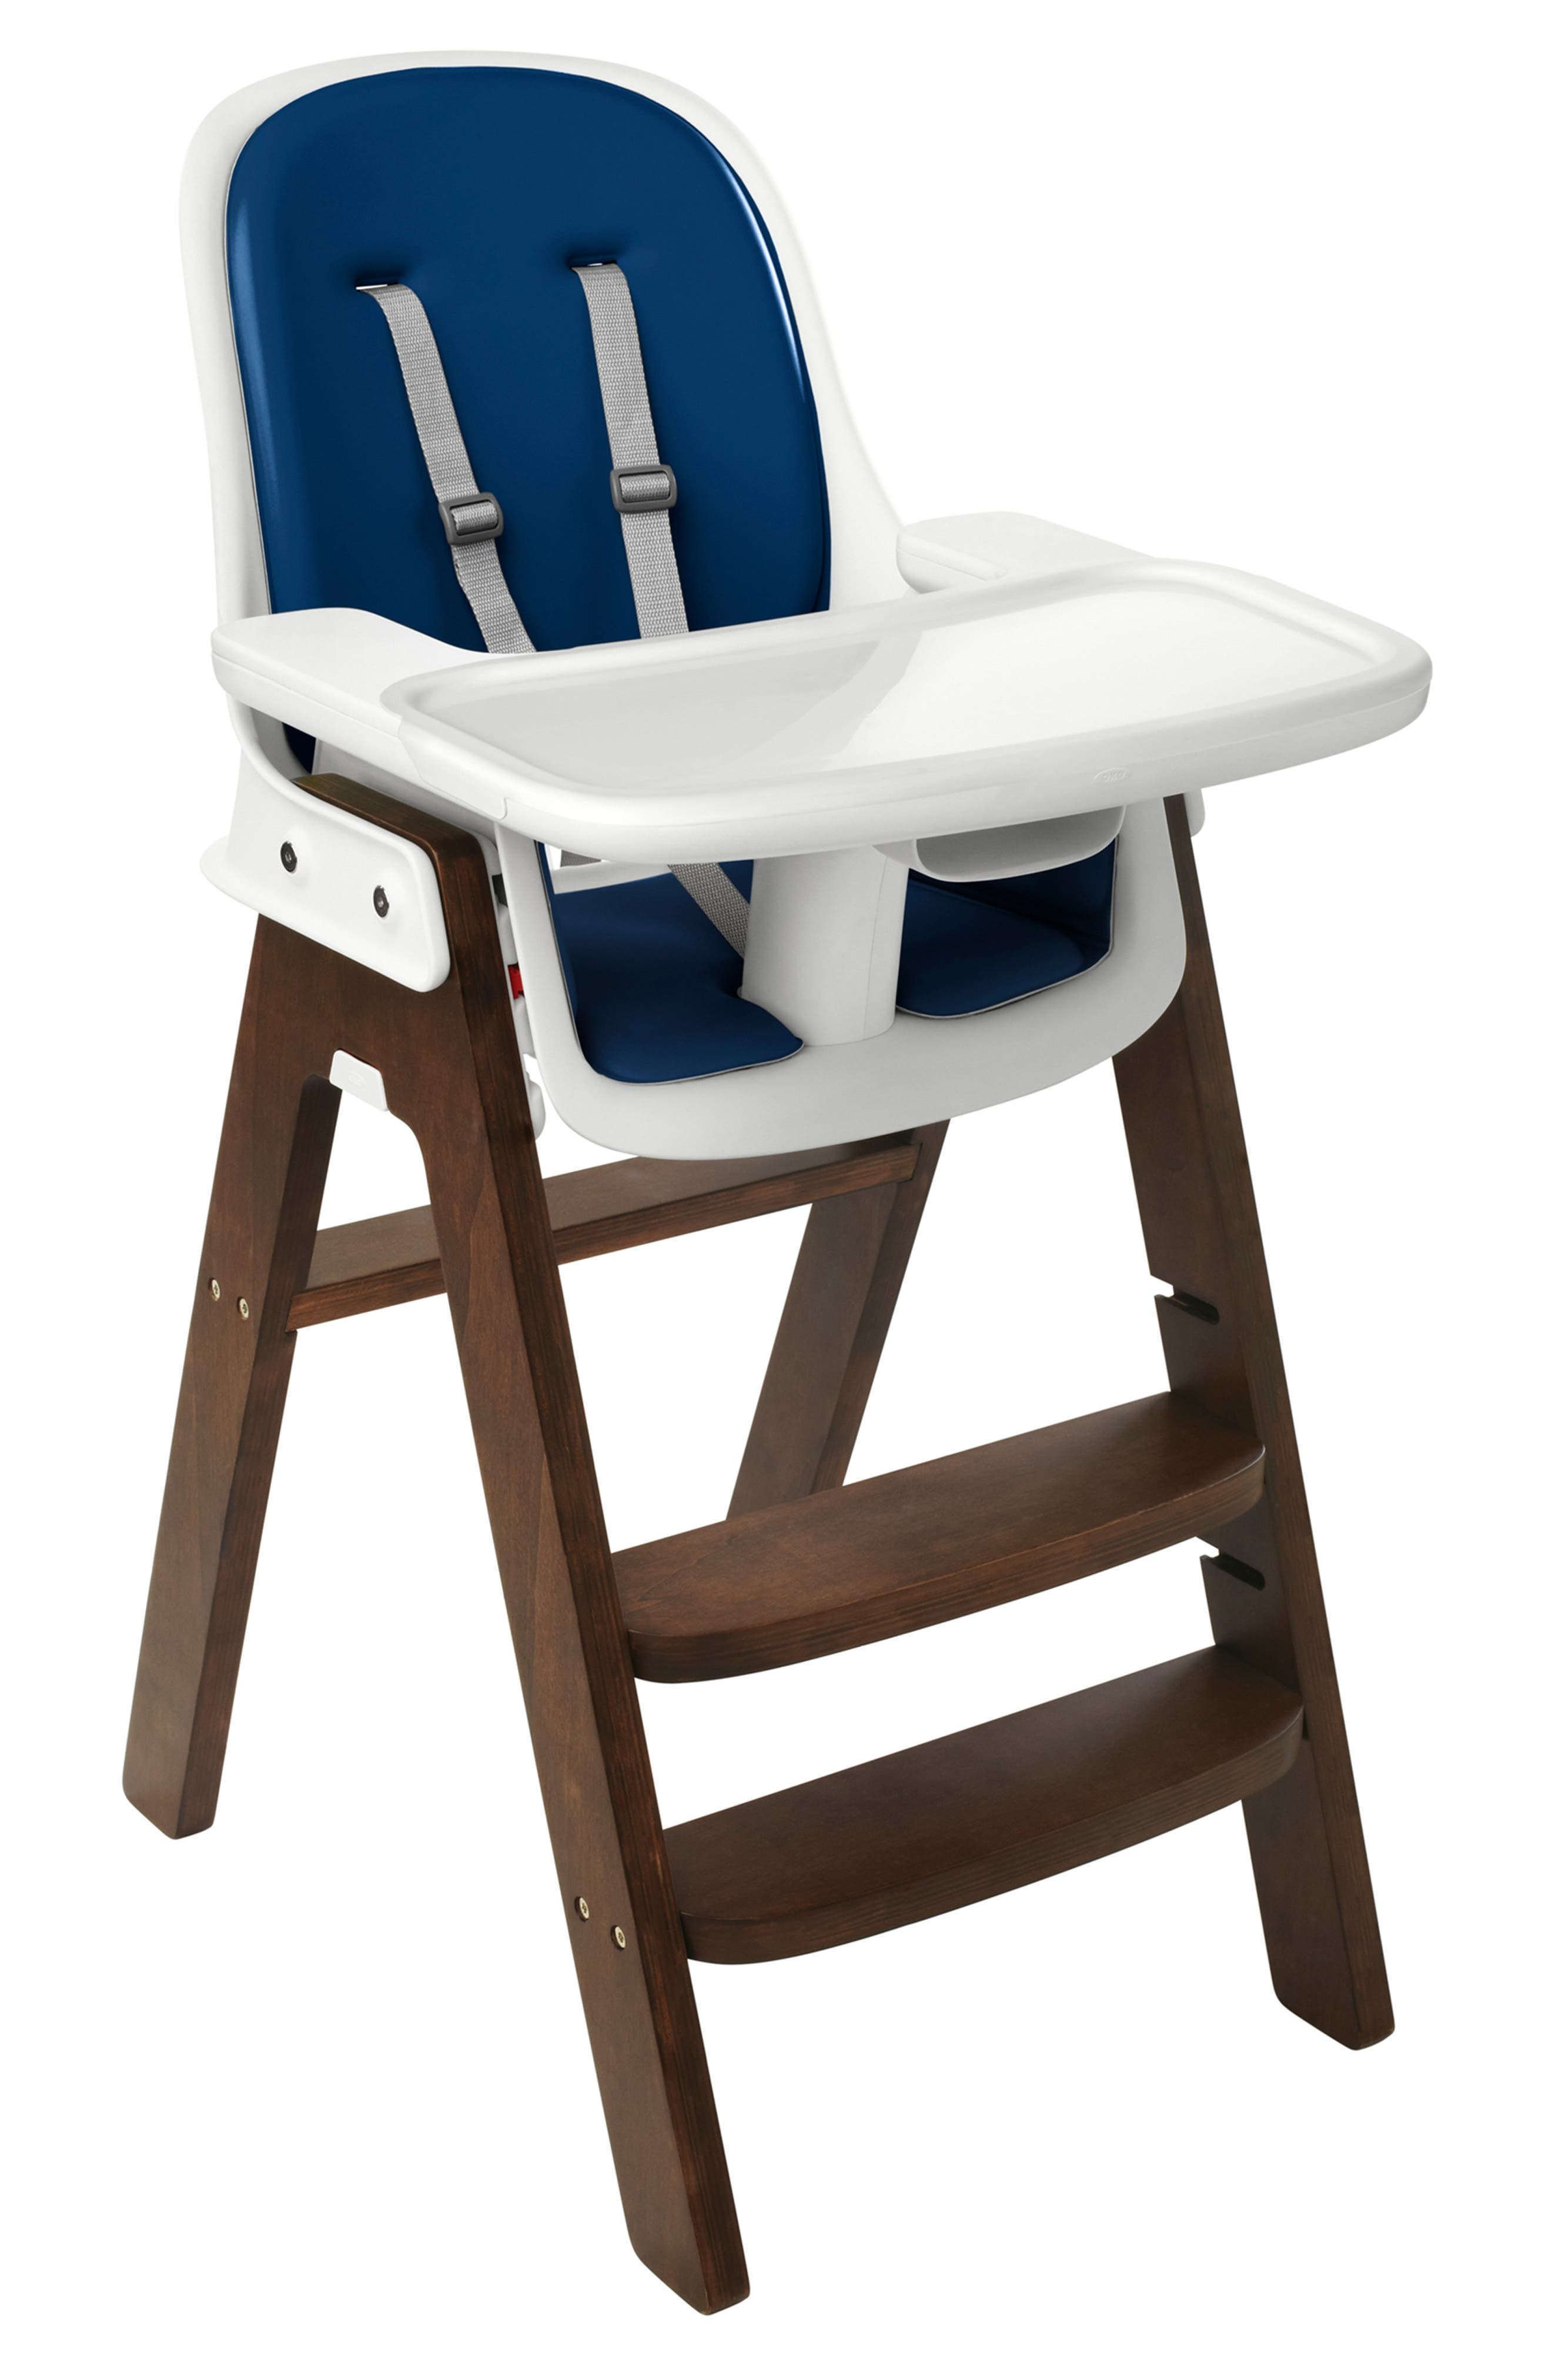 'Sprout' Chair,                             Main thumbnail 1, color,                             NAVY/ WALNUT